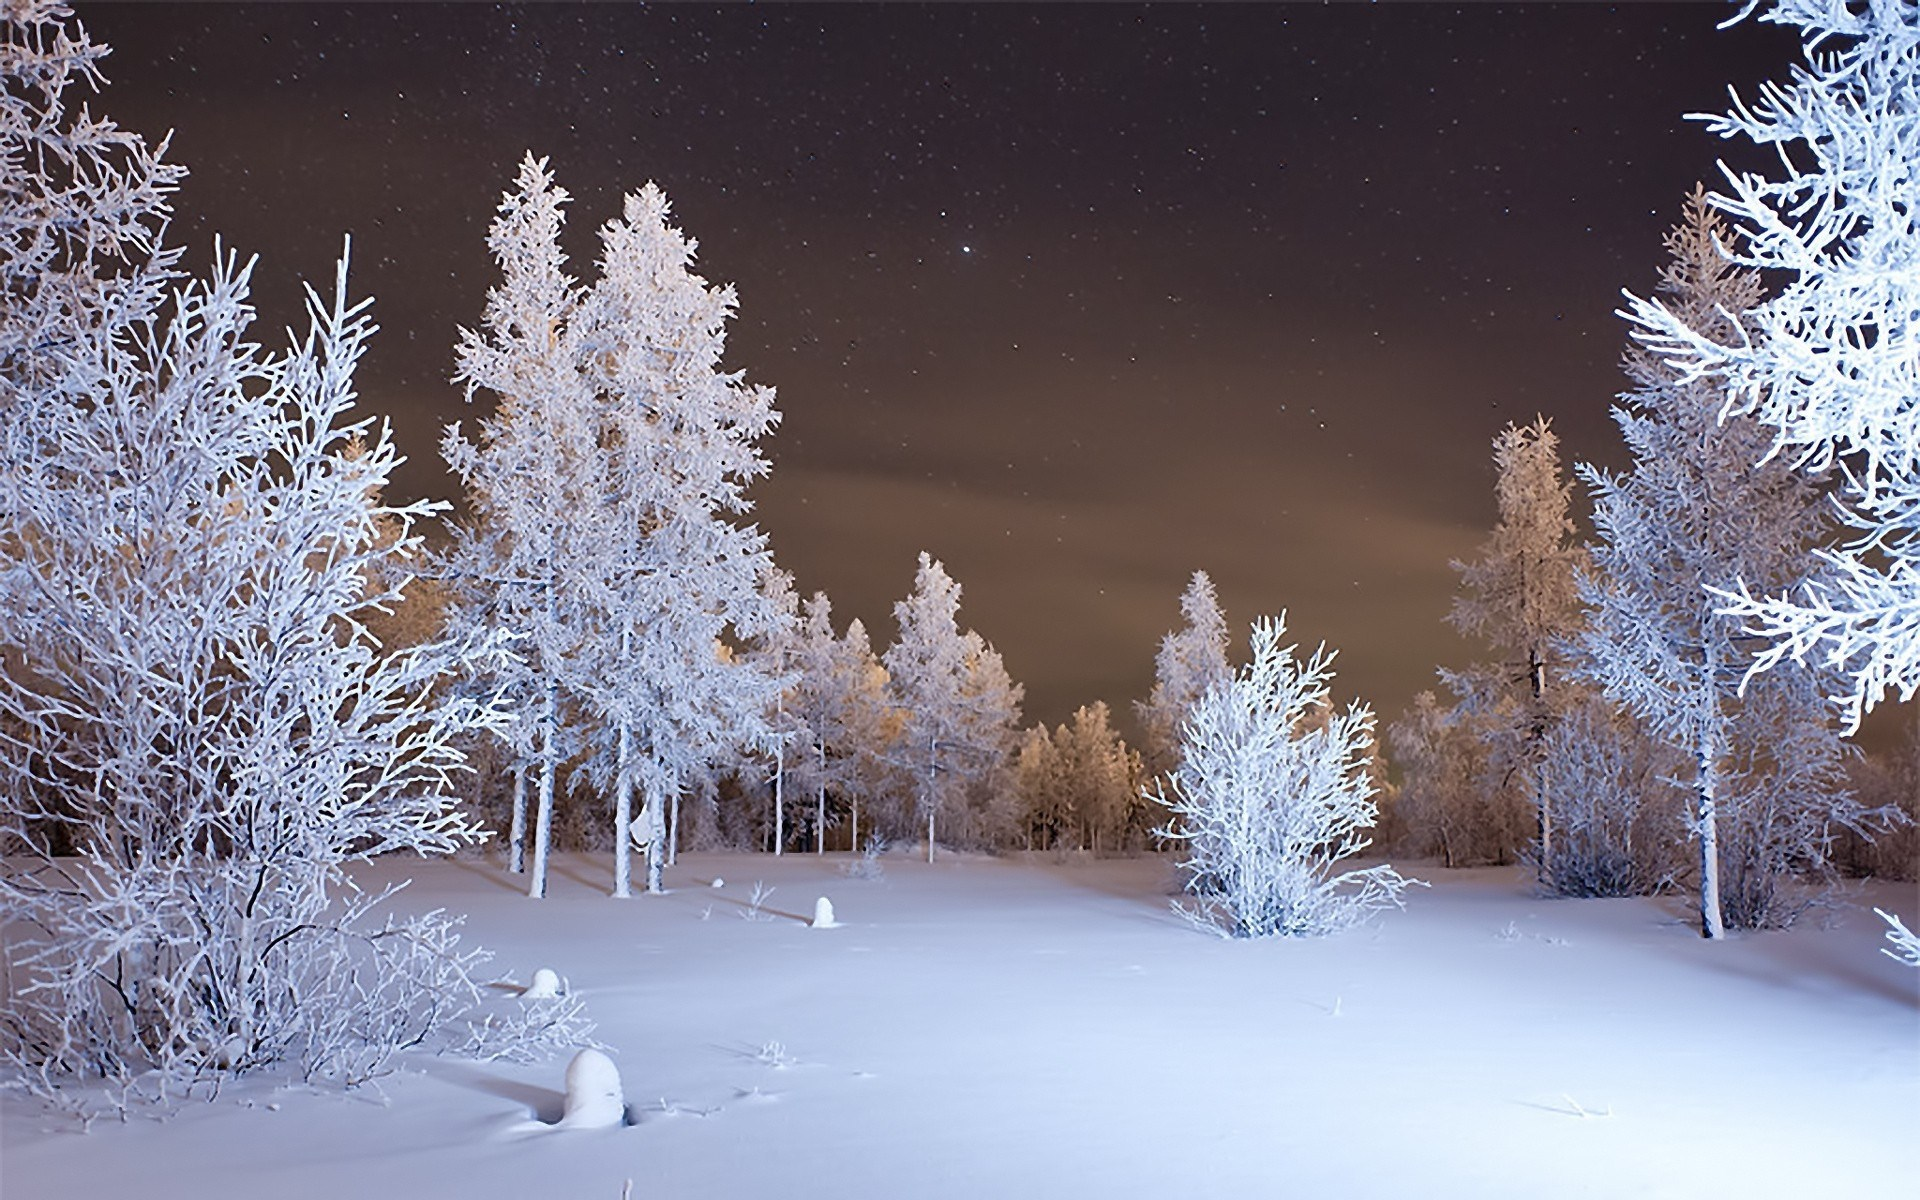 snow falling wallpapers